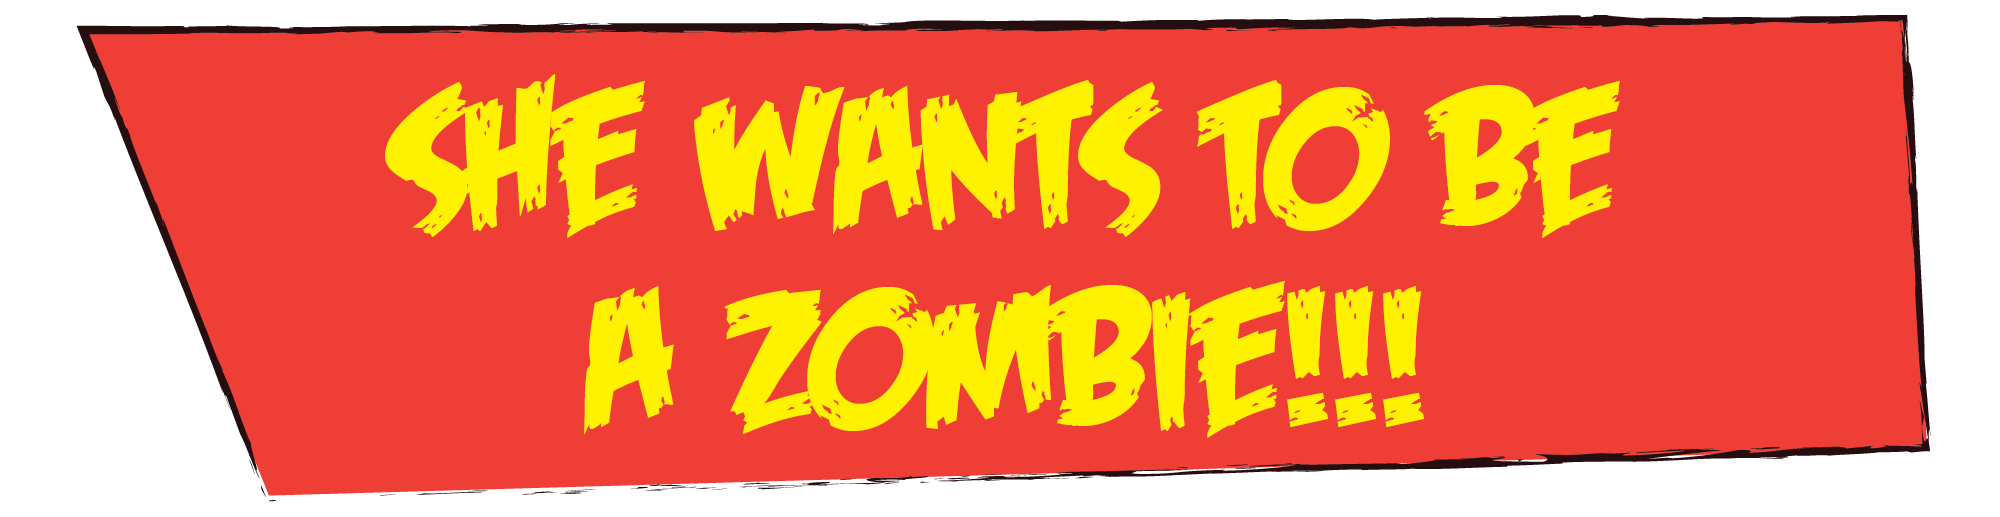 she-wants-to-be-a-zombie.png